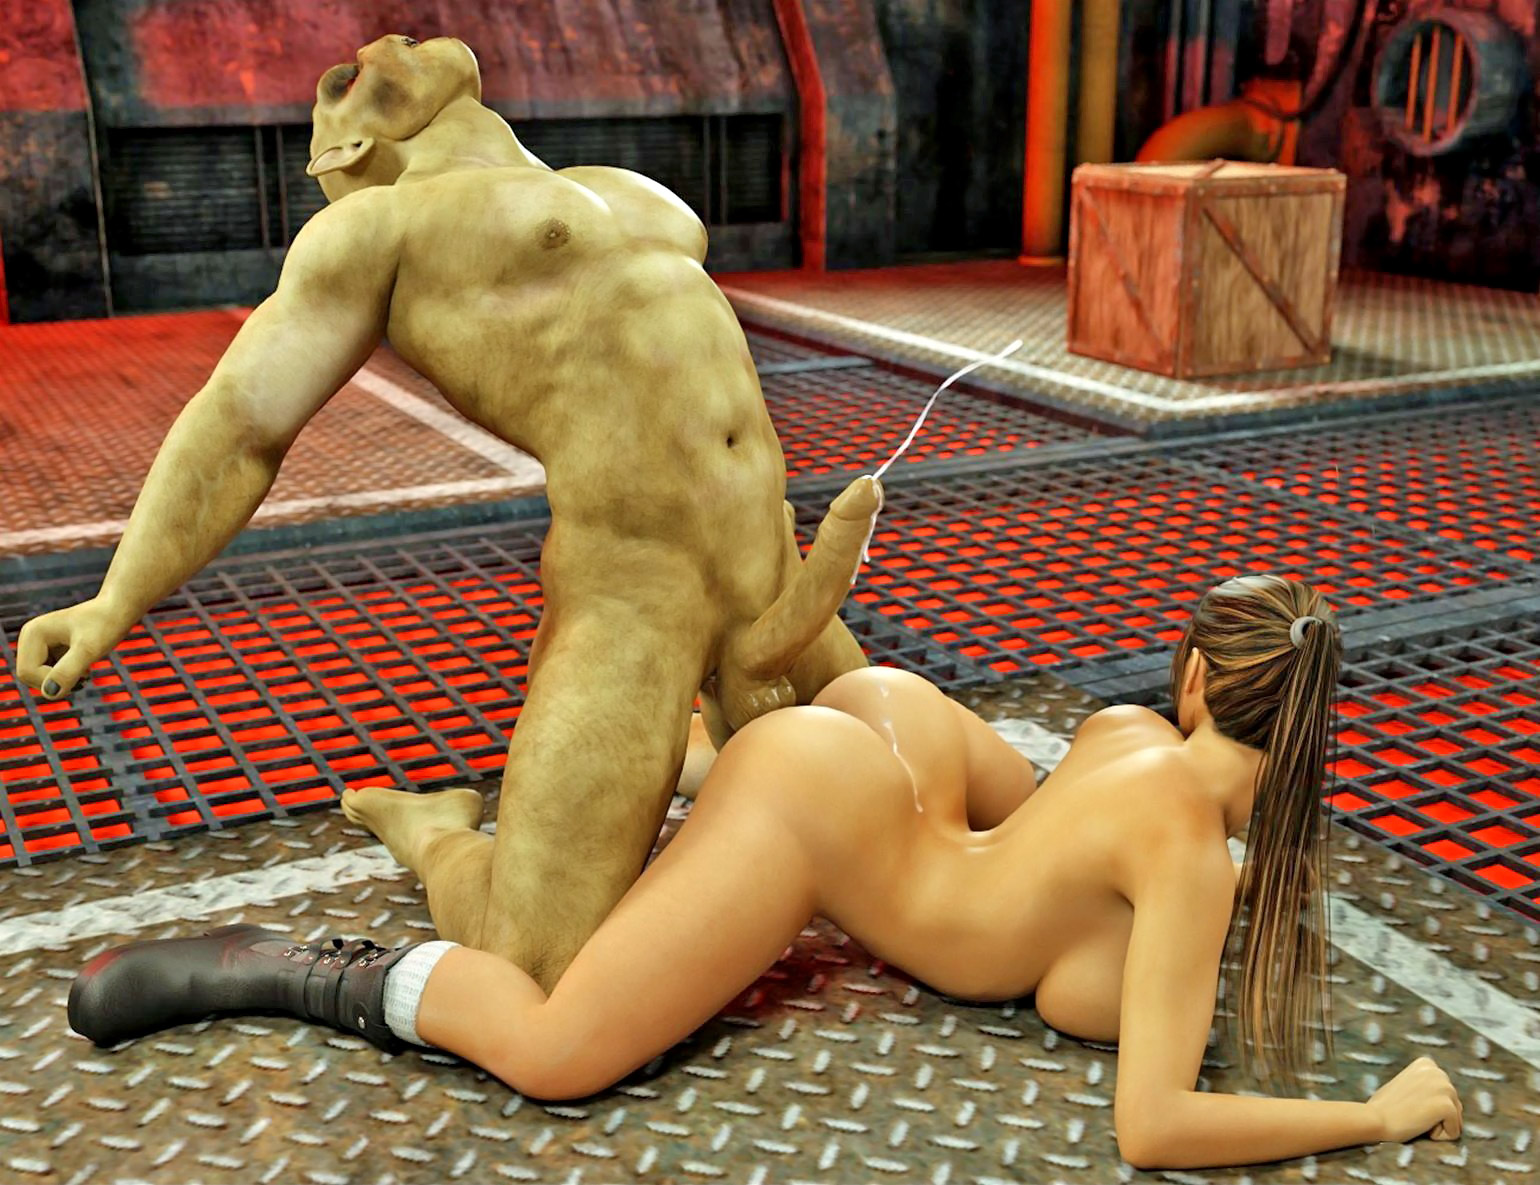 Lara croft galleries 3d sex fucked toons